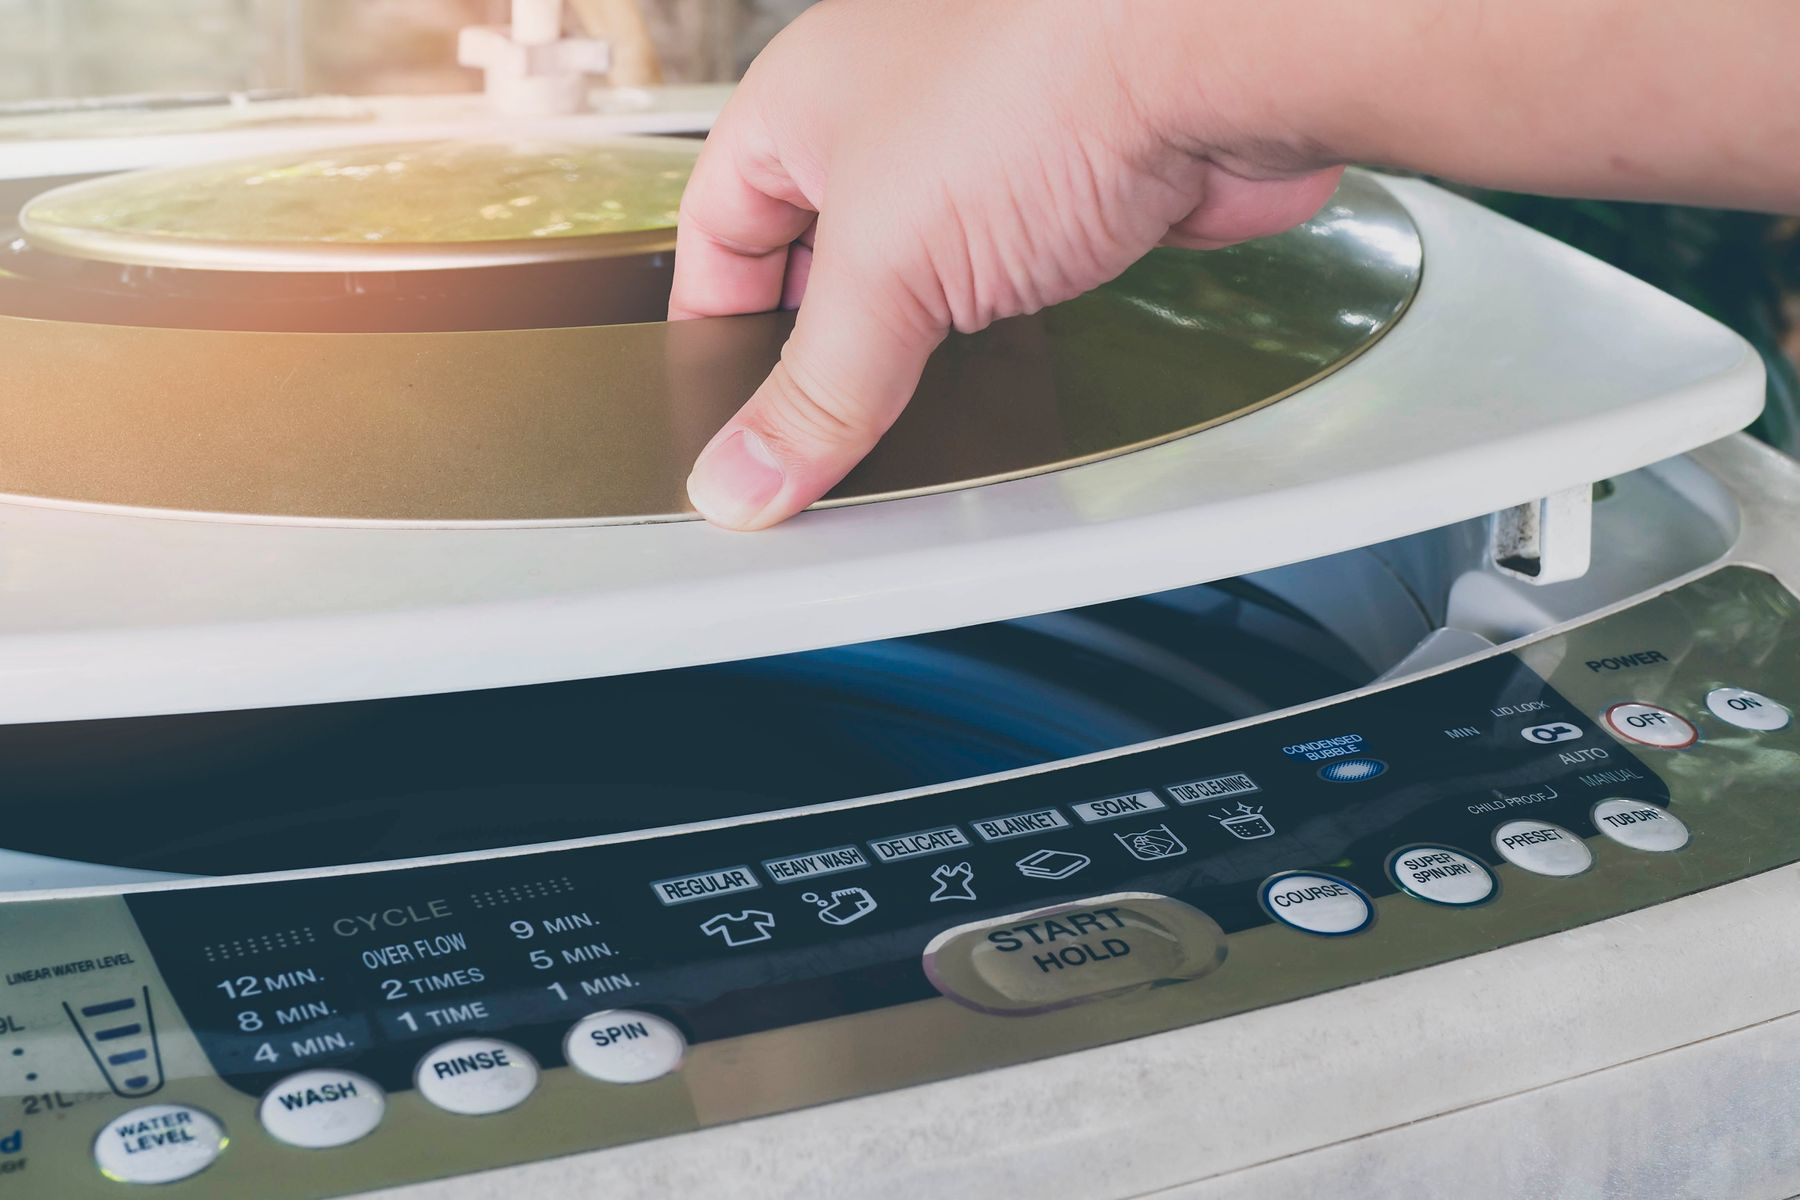 How to Clean Your Top-Loading Washing Machine shutterstock 1045833679